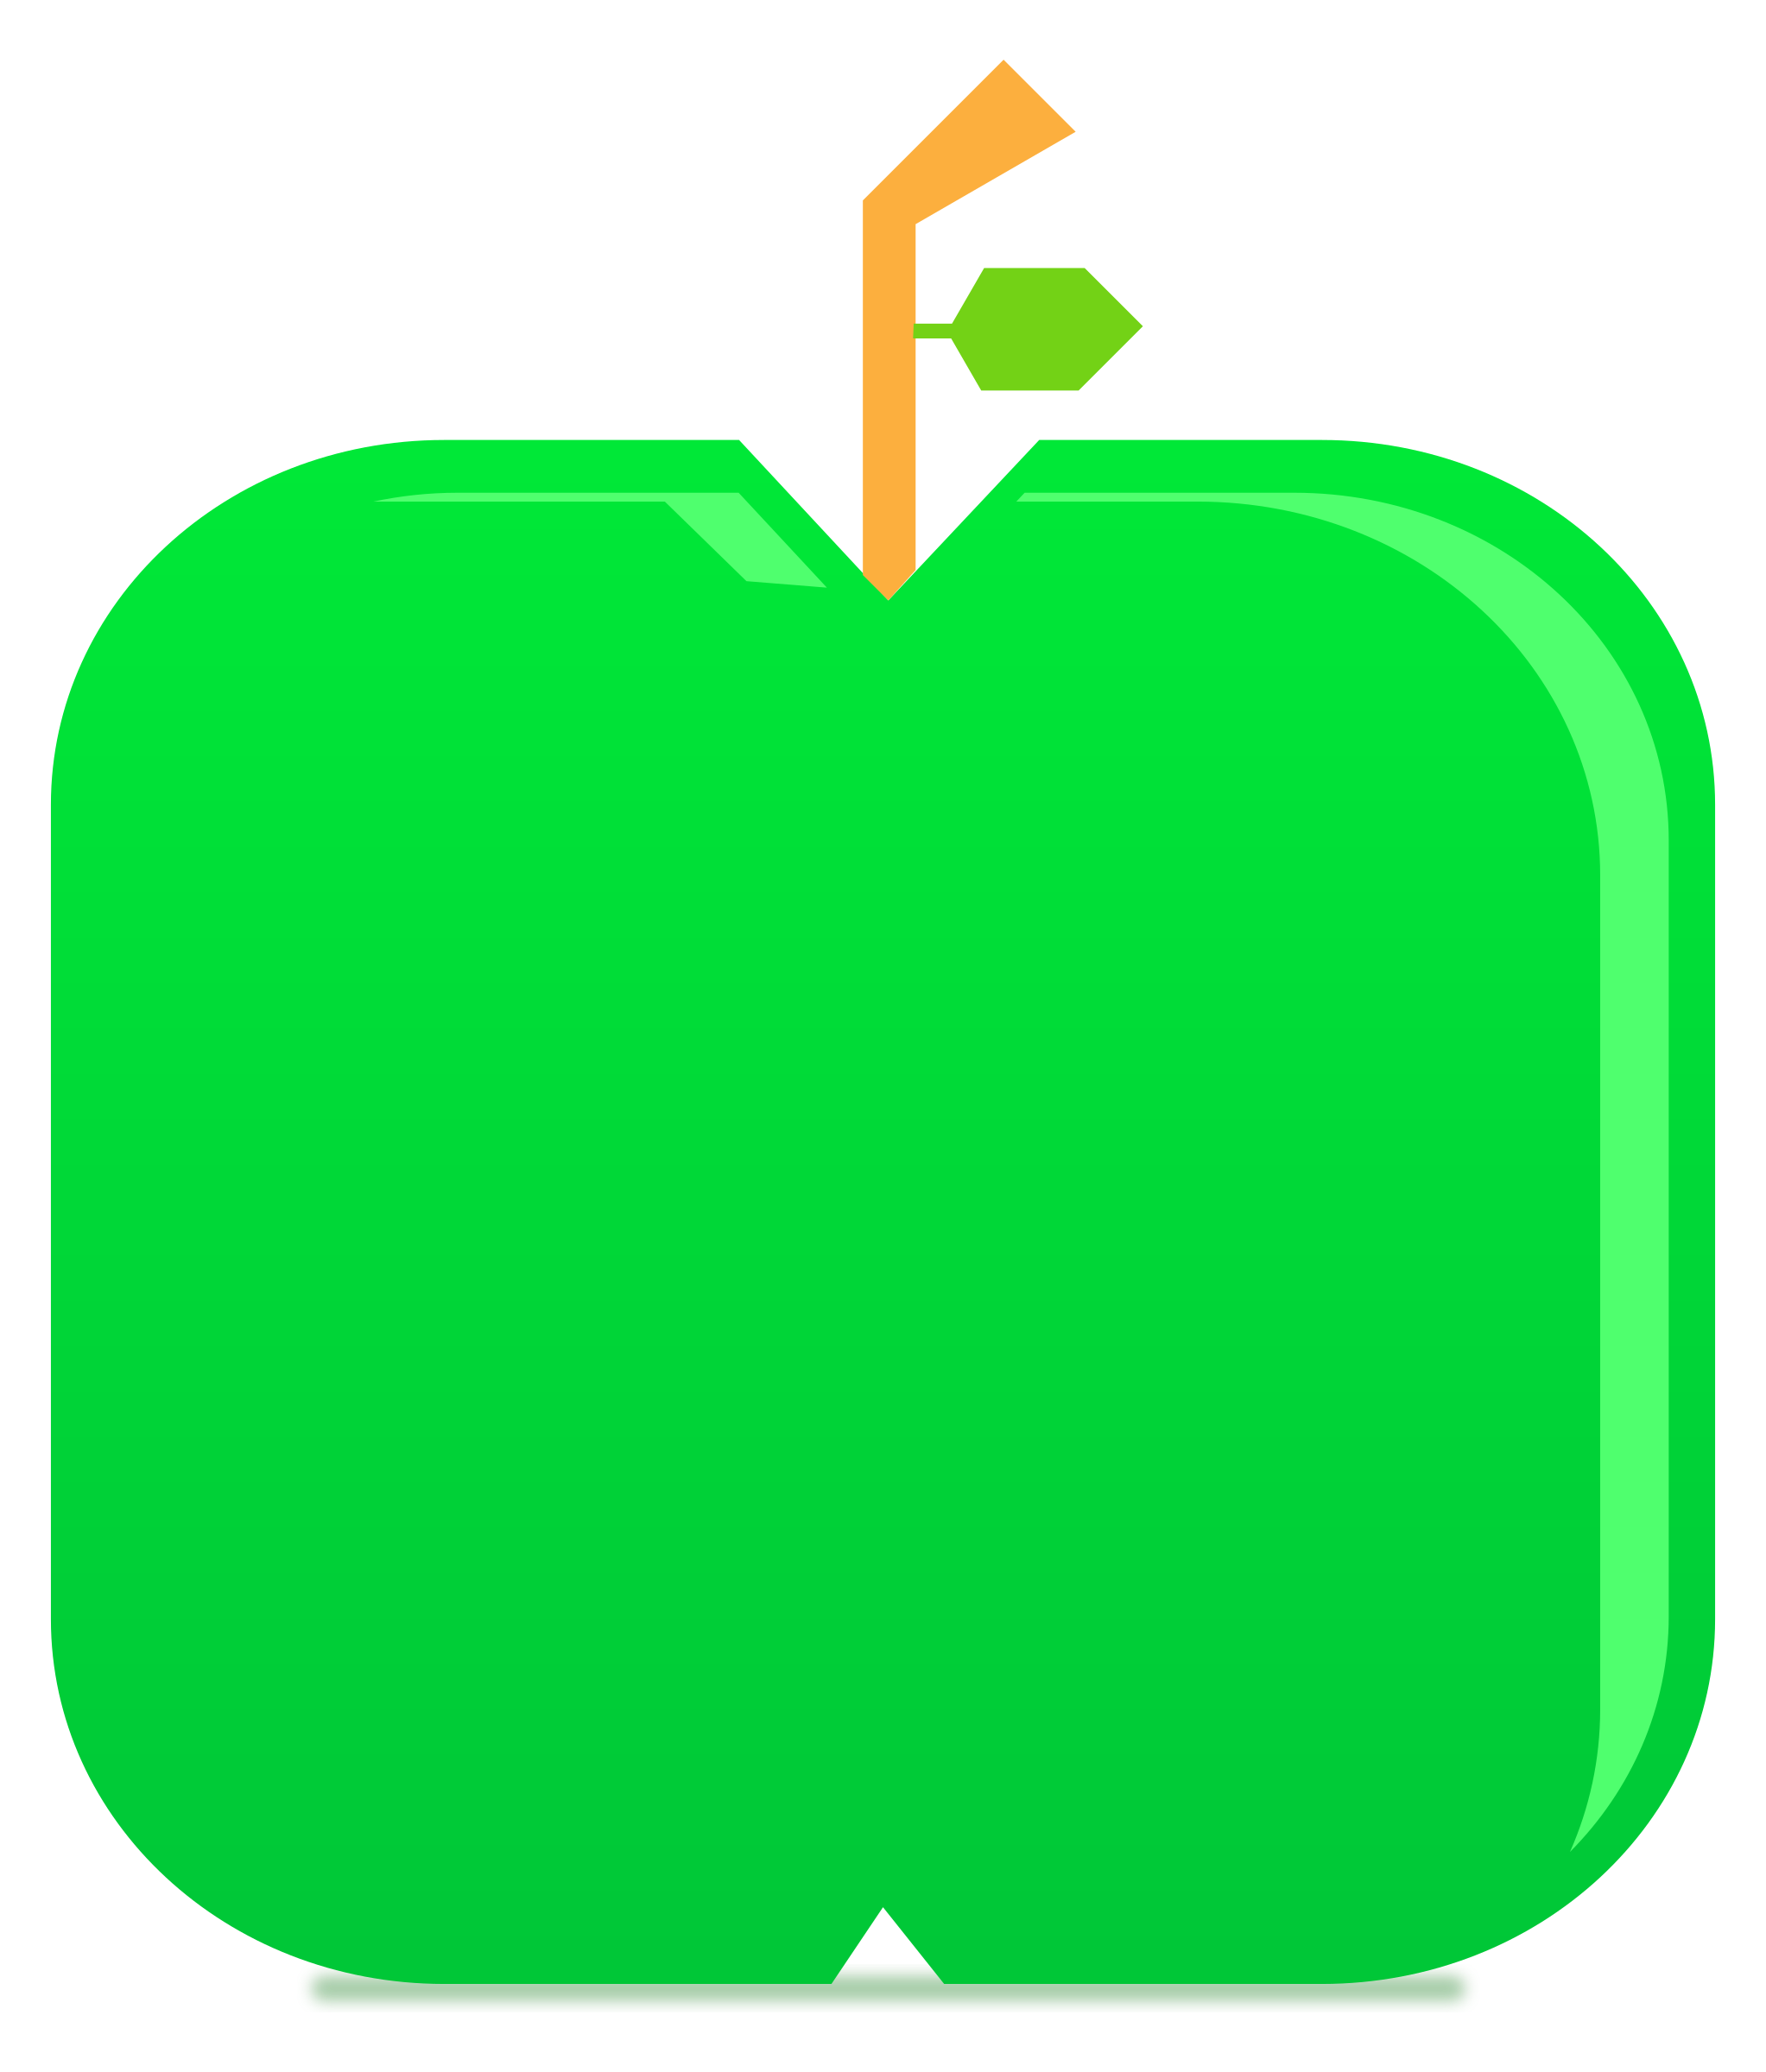 apple fruit clip art. green apple fruit flat \u0026 minimal style clip art